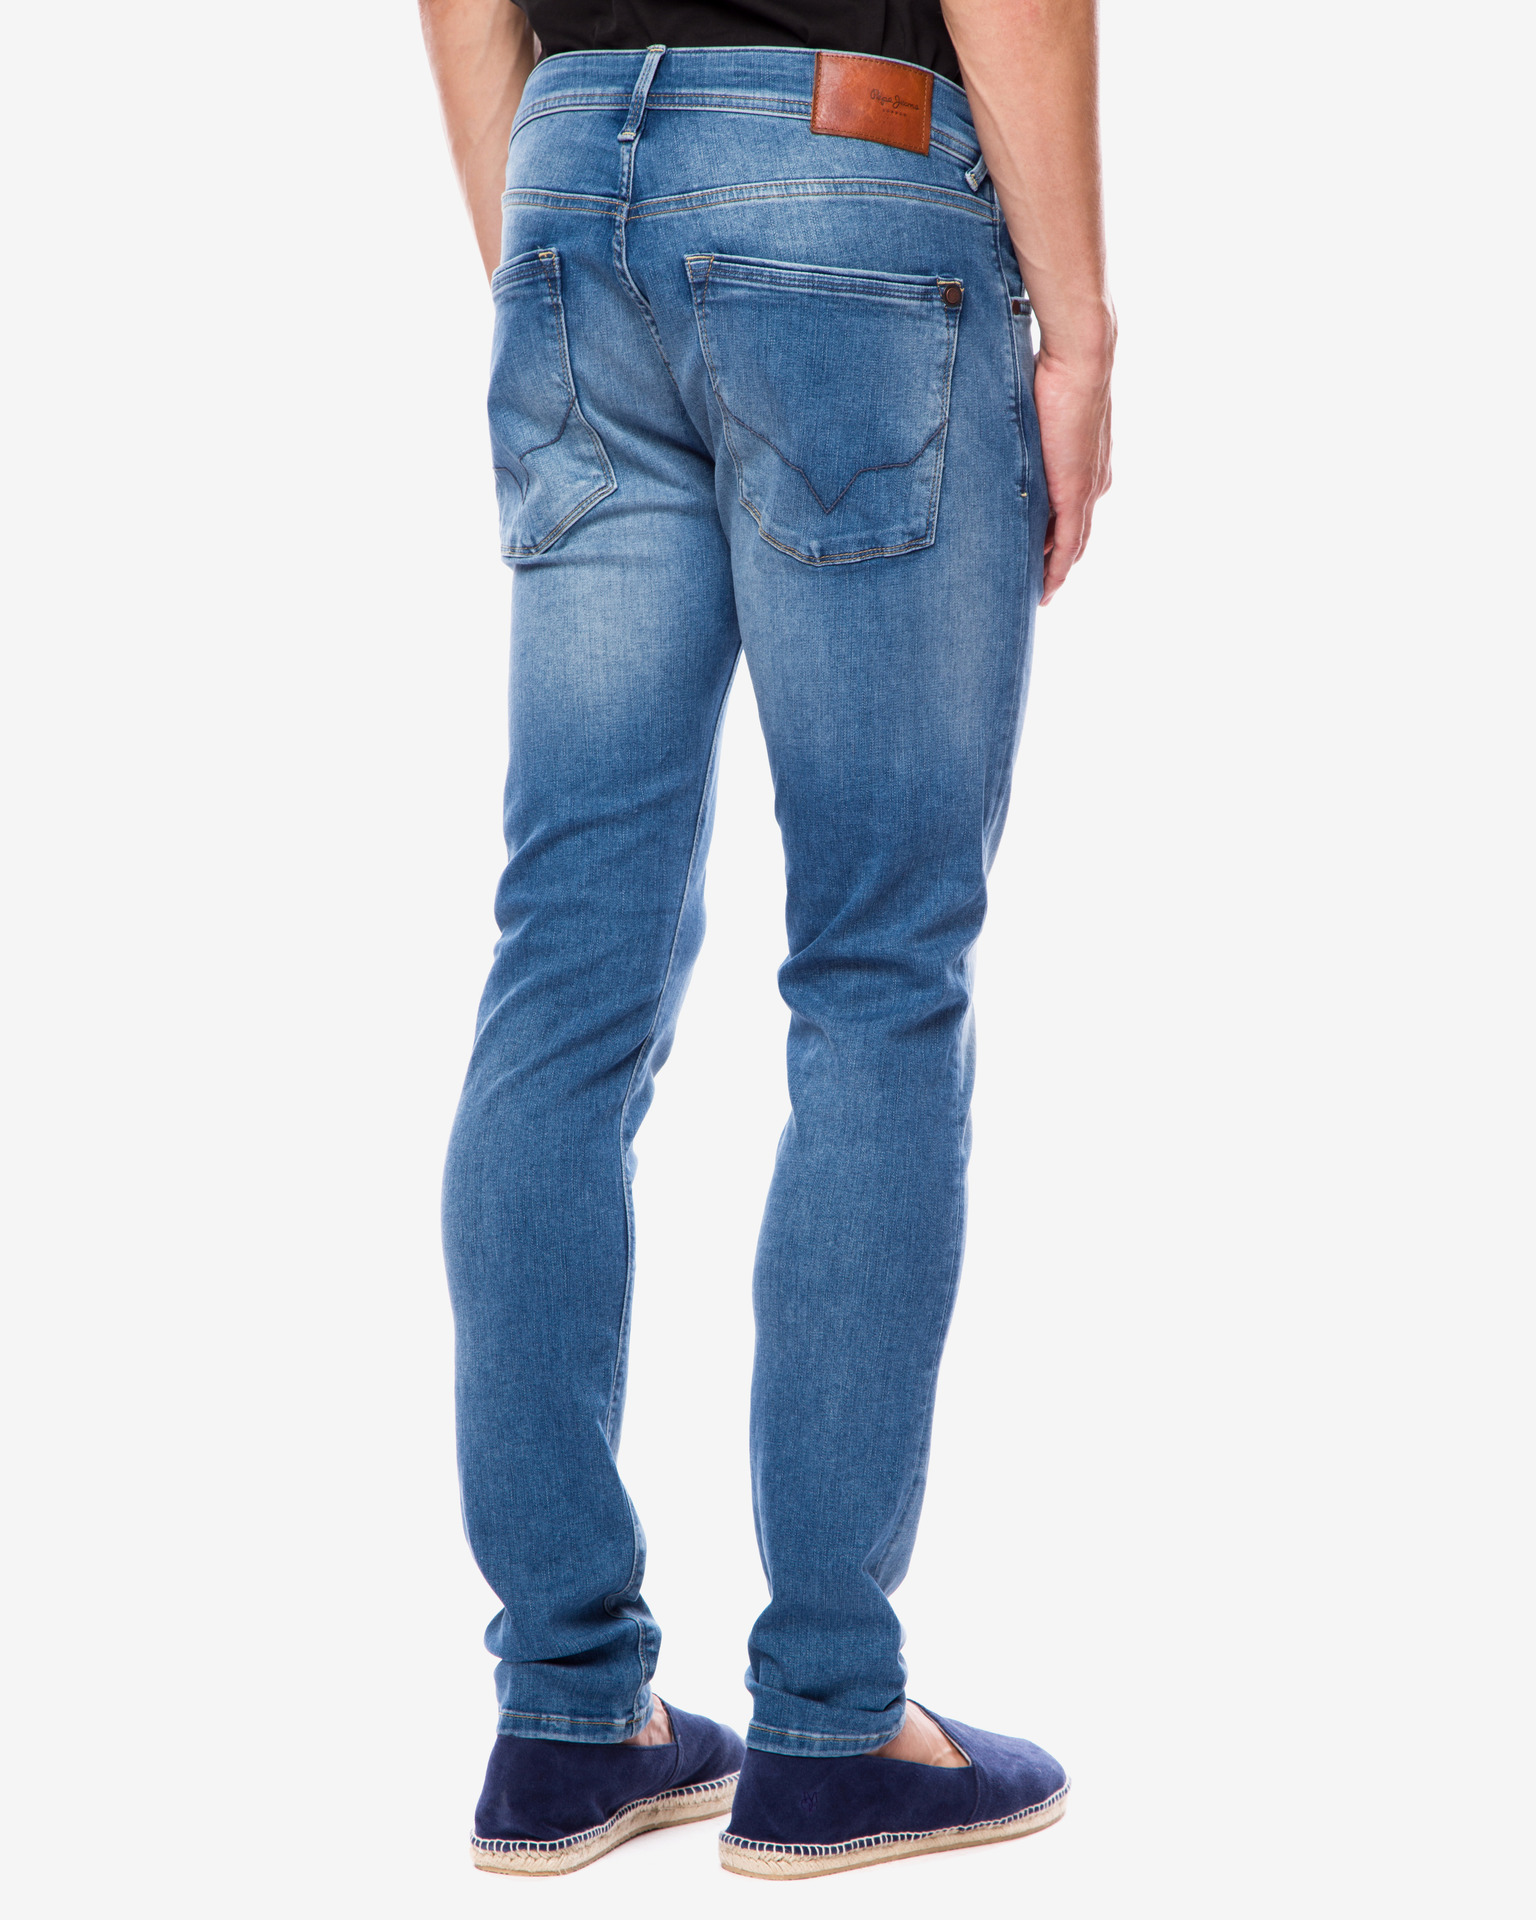 Pepe jeans hose rot